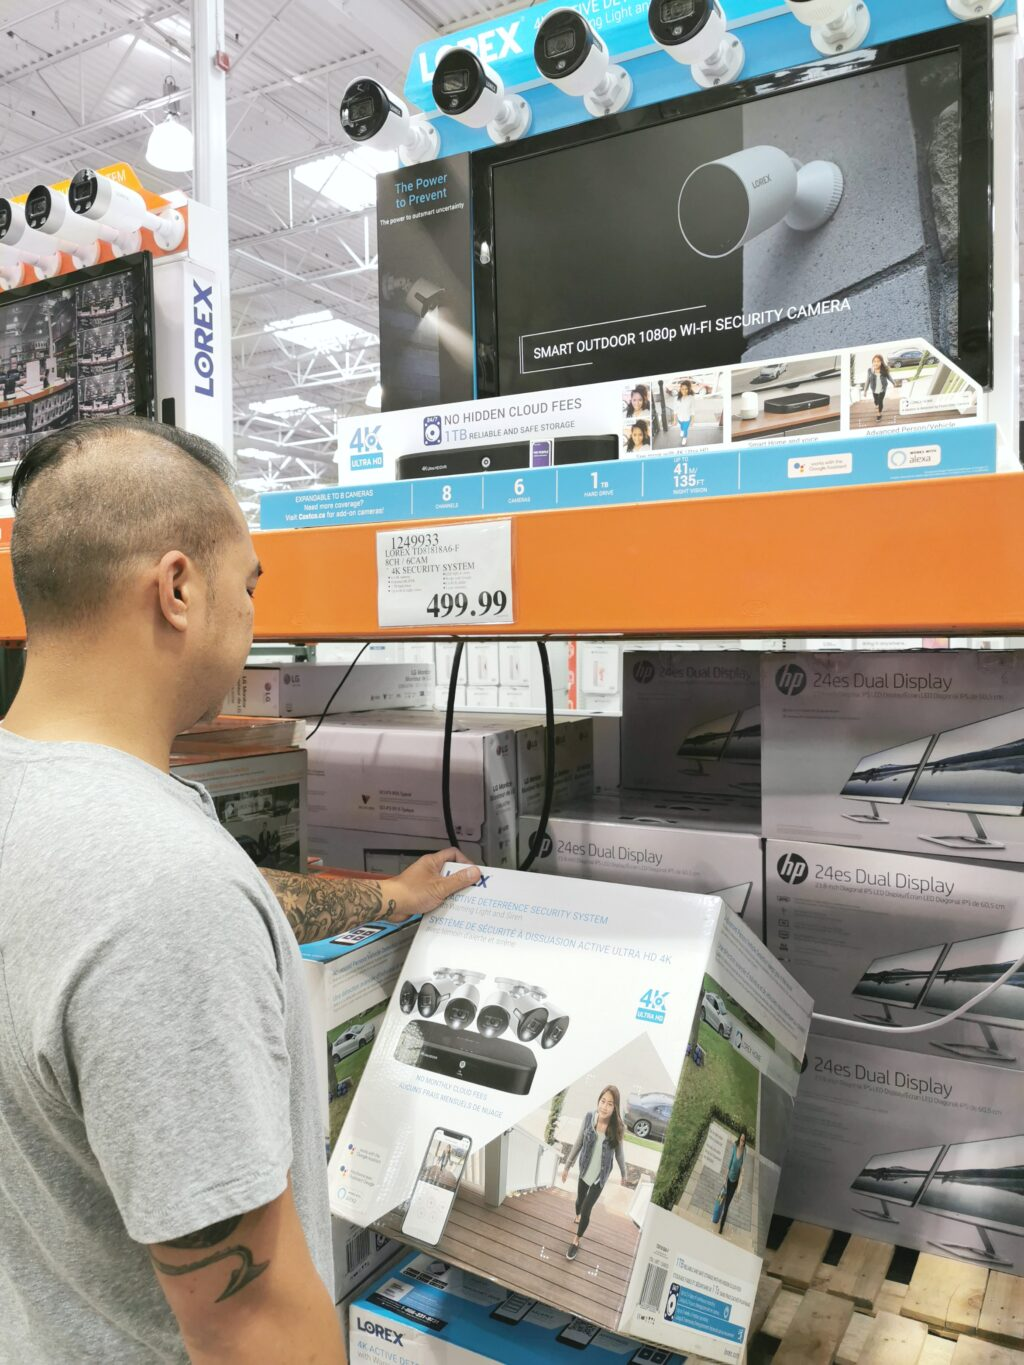 Darasak looks at the security cameras at Costco.